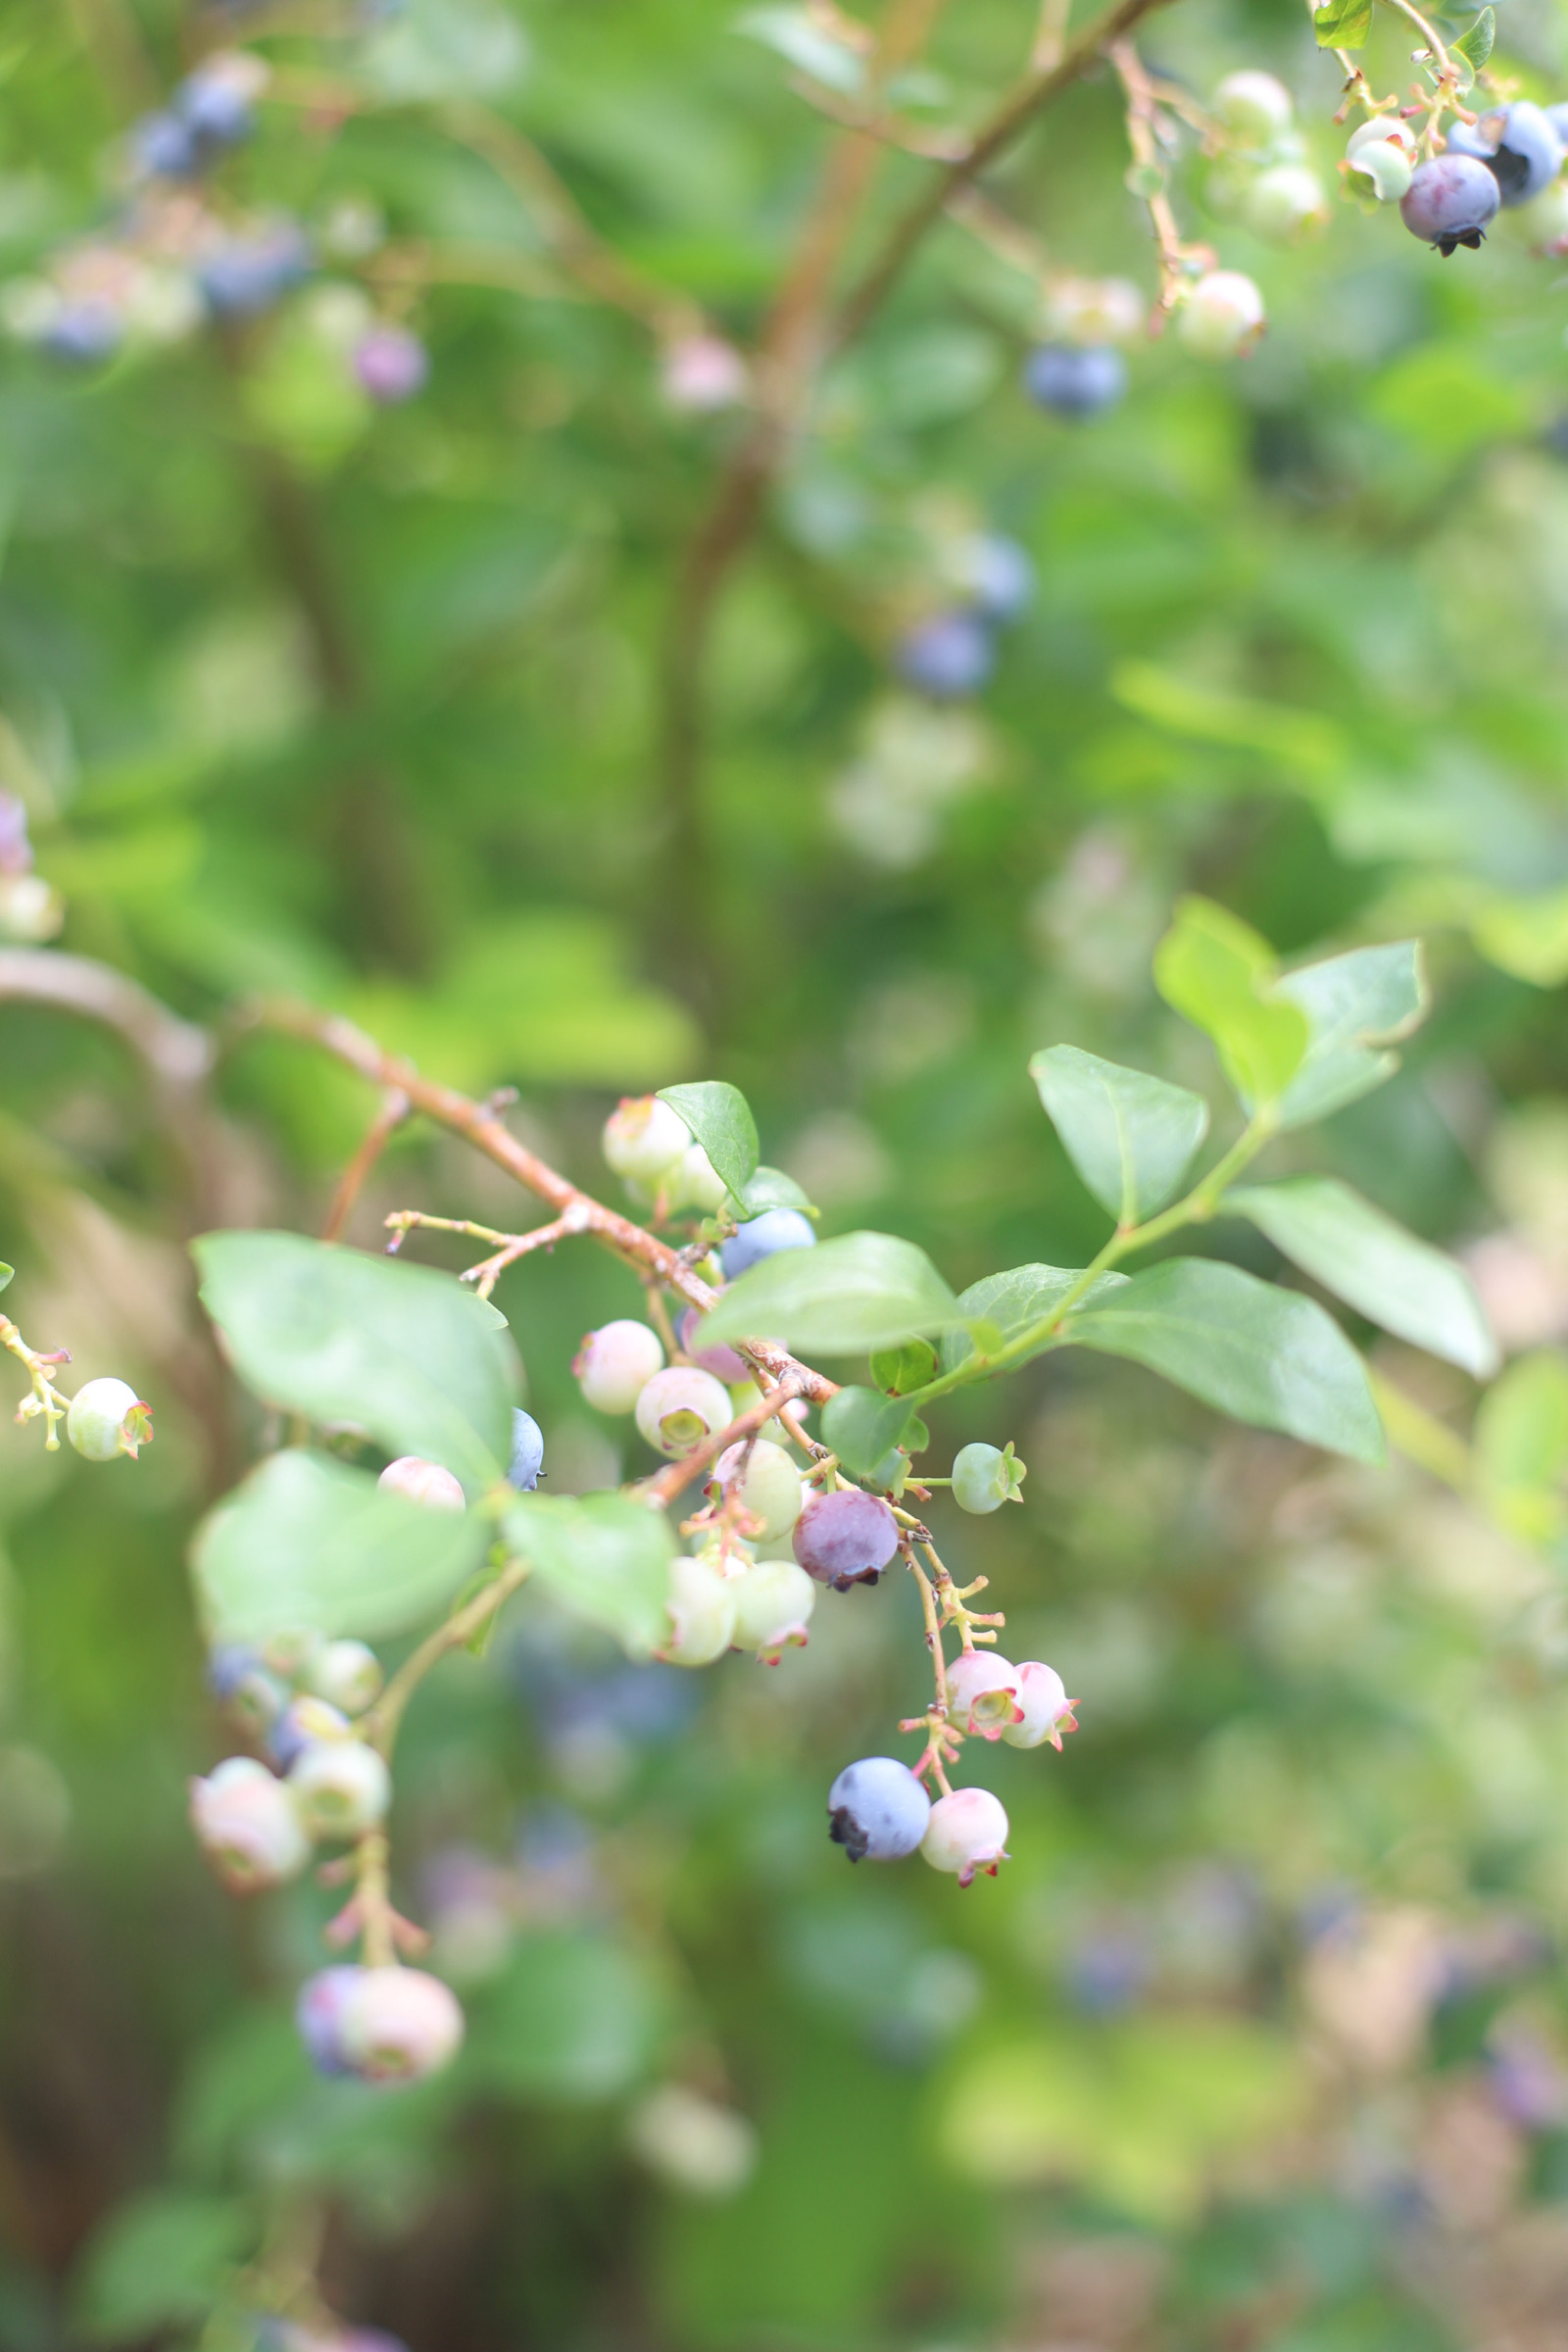 Looking for somewhere family-friendly to do a little berry picking around the Boston area this summer? We've founded the sweetest spot to pick blueberries, strawberries, and even cherries! | @glitterinclexi | GLITTERINC.COM